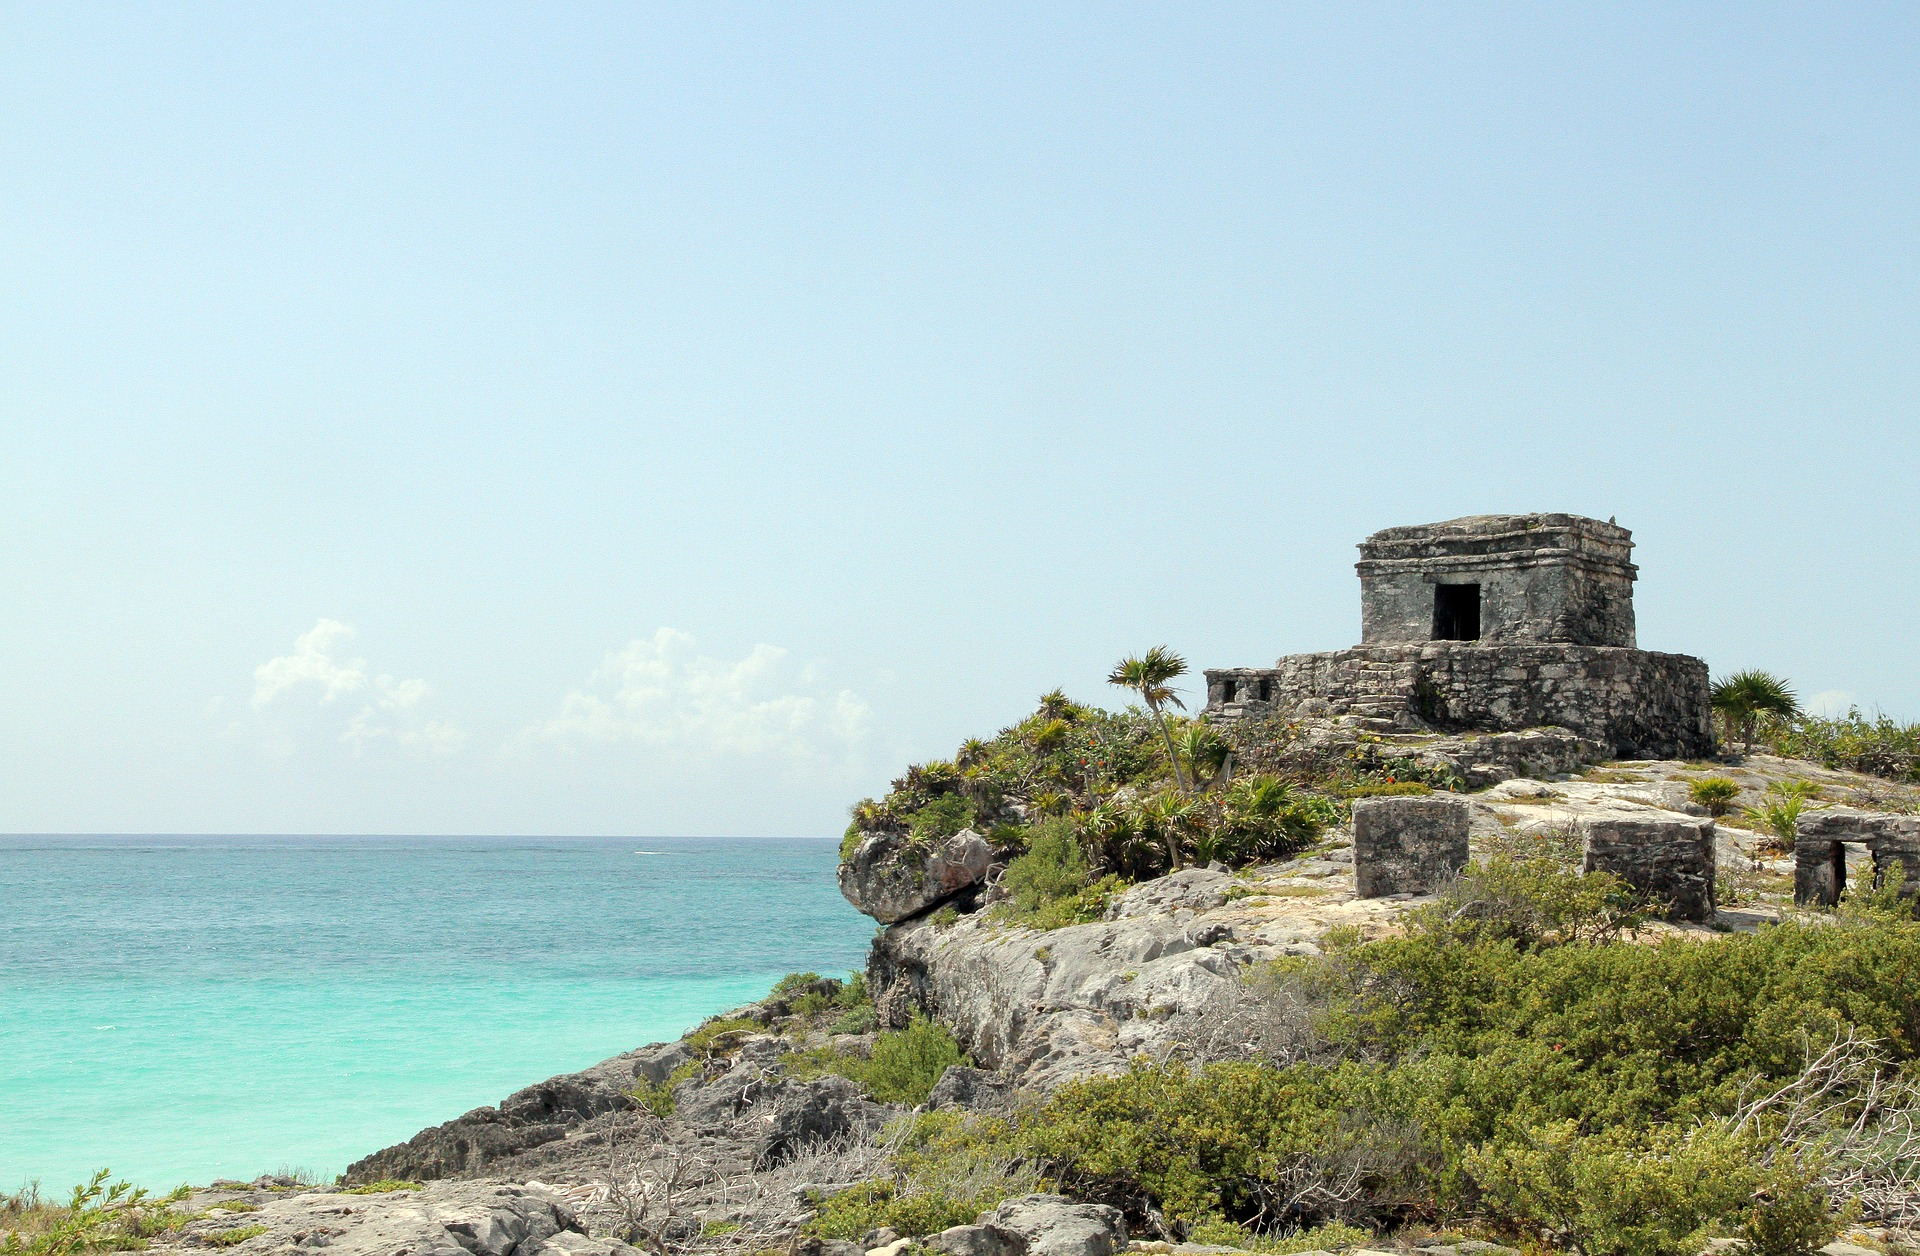 Playa Yachting - Tulum